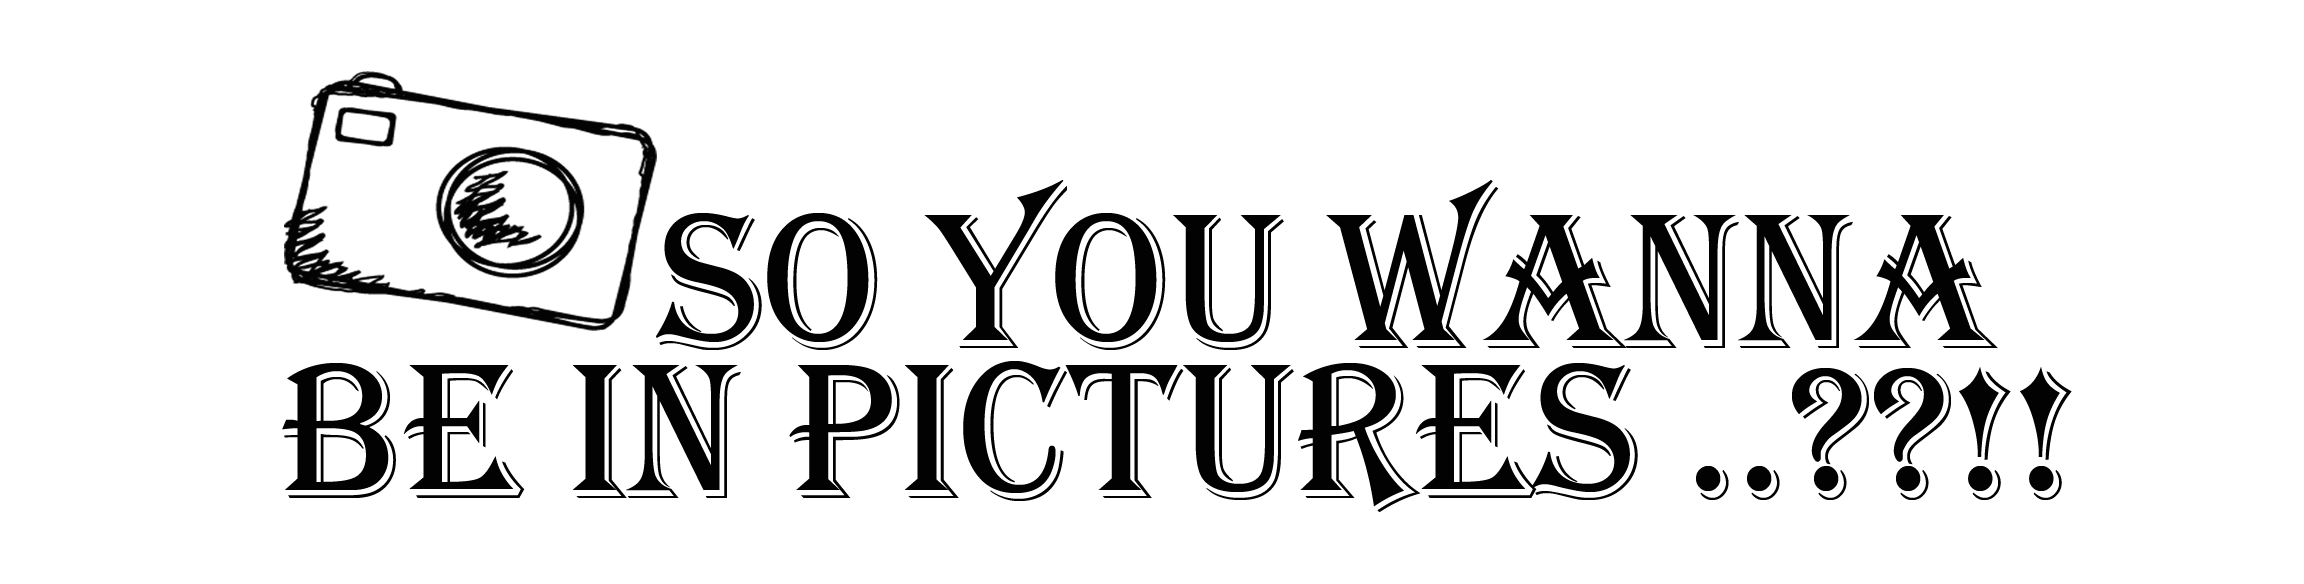 So you wanna be in pictures - banner.png